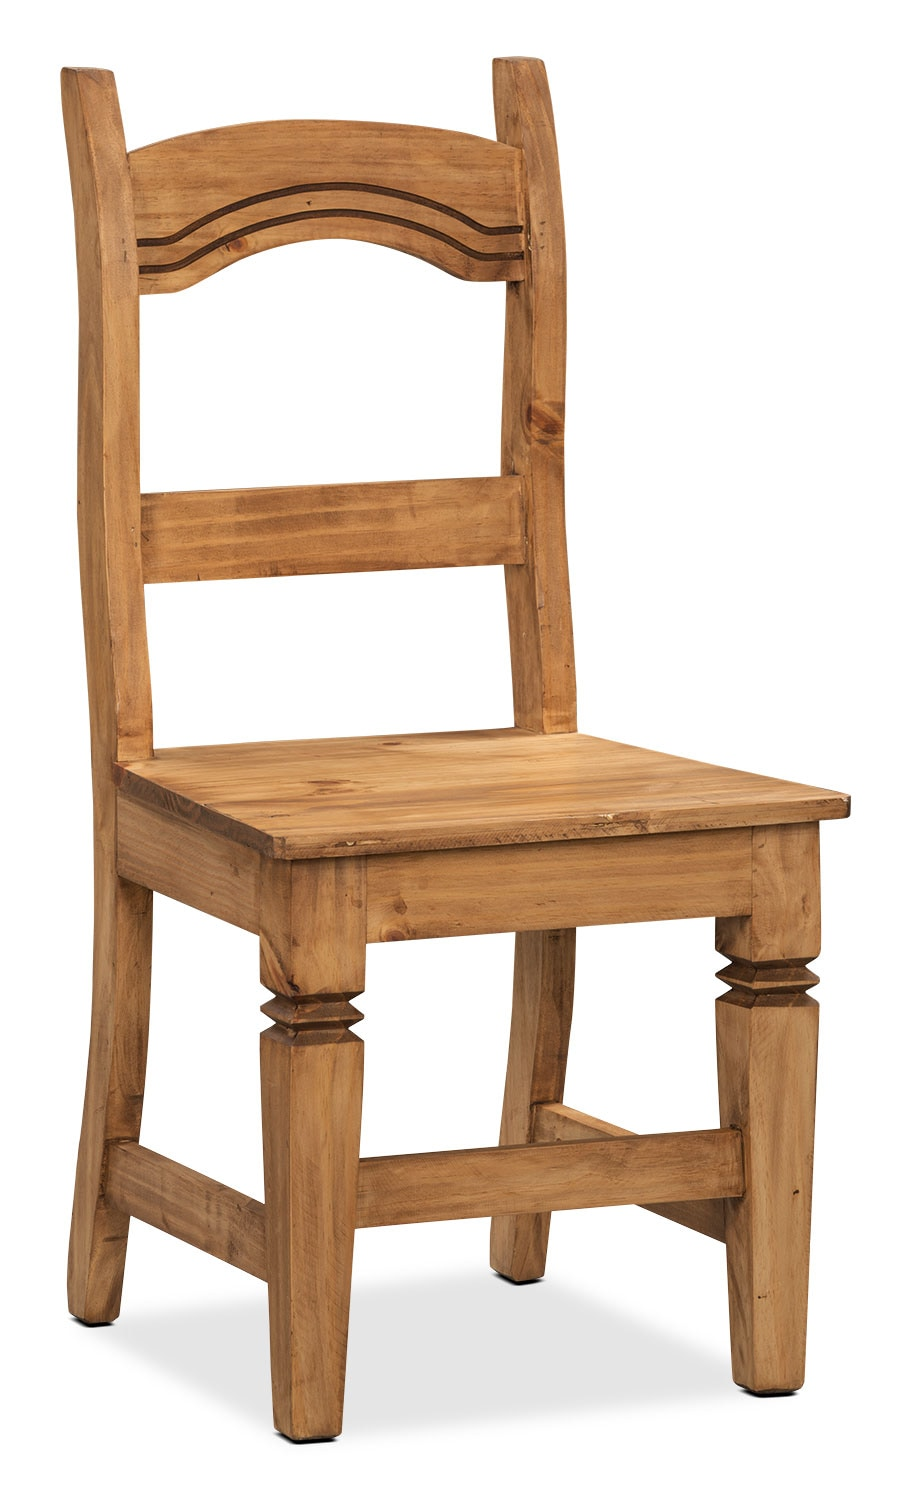 Santa Fe Rusticos Solid Pine Dining Chair